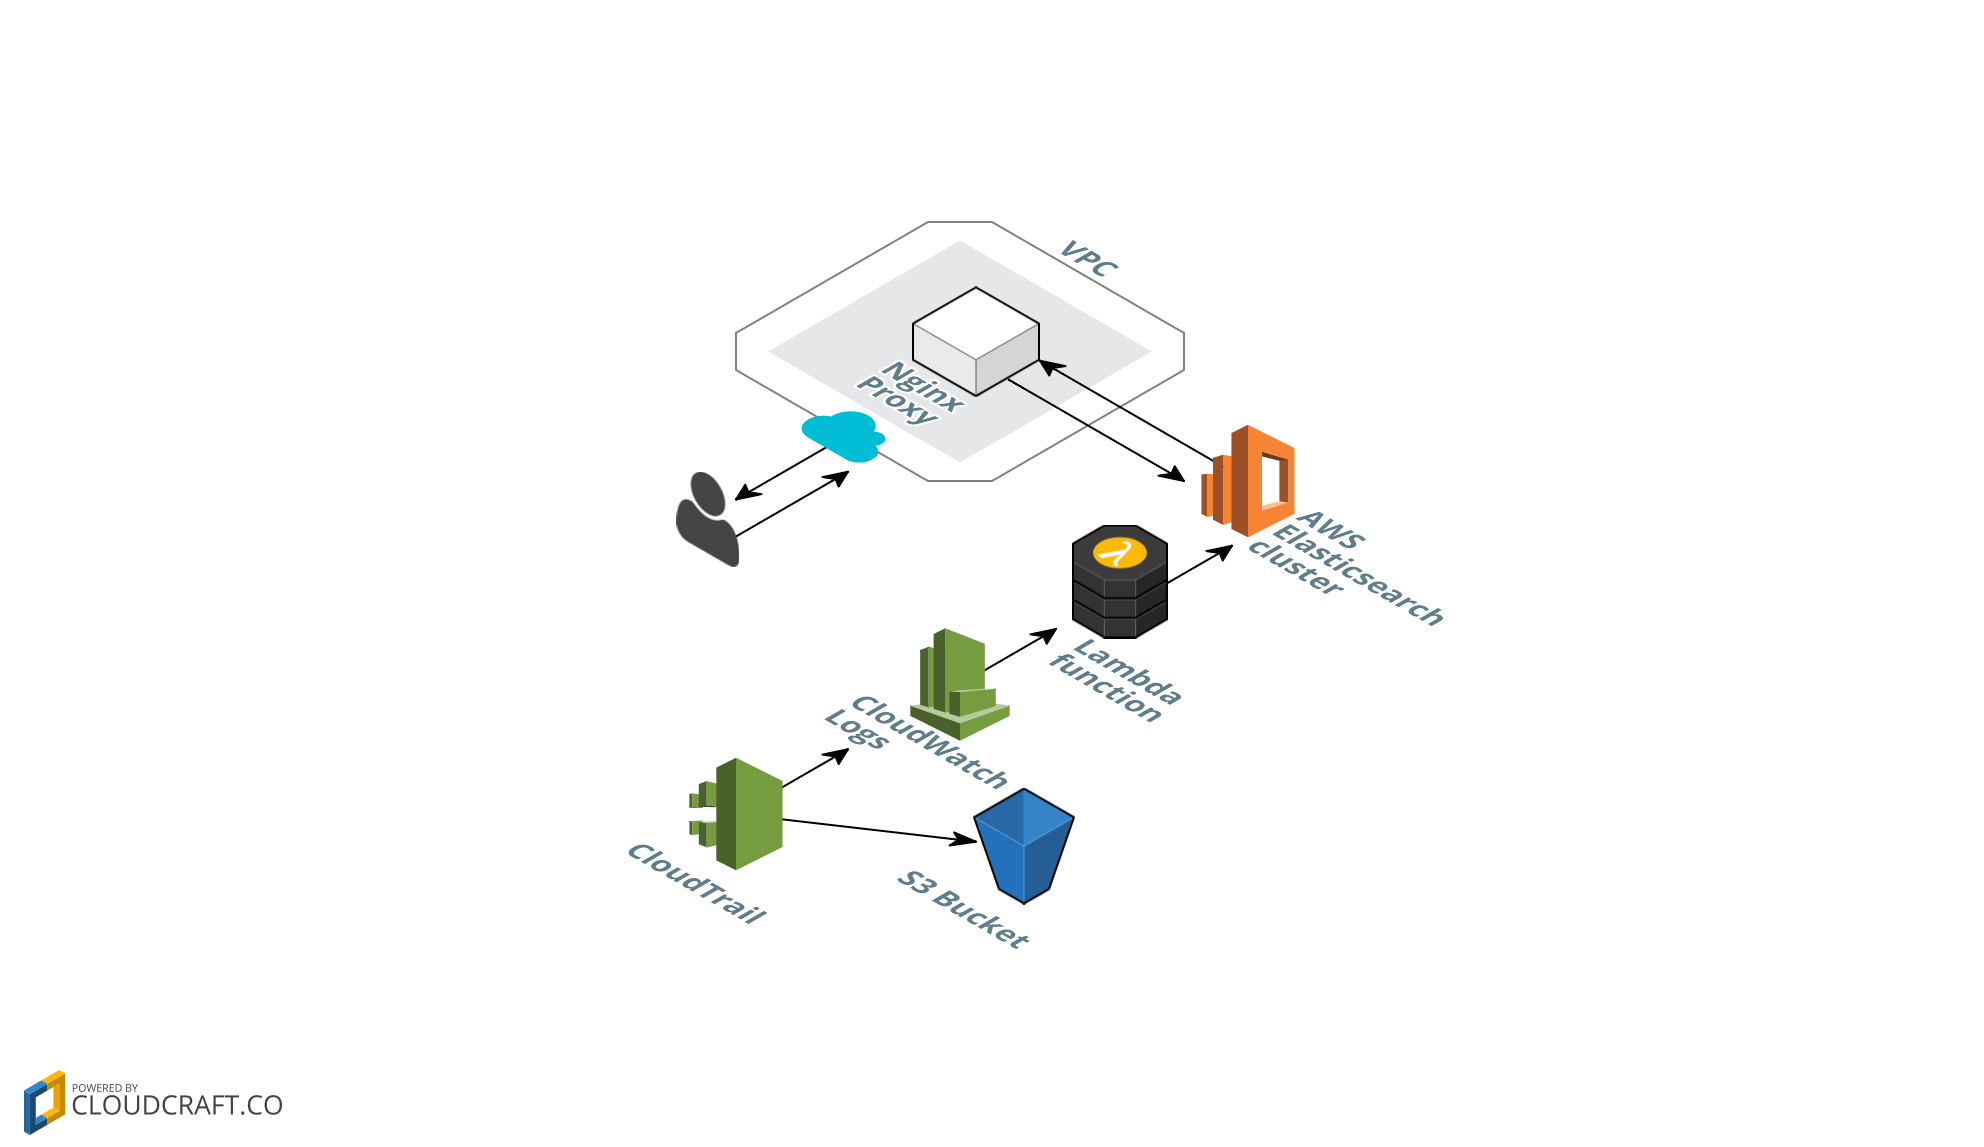 cloudtrail-aws-elasticsearch/README md at master